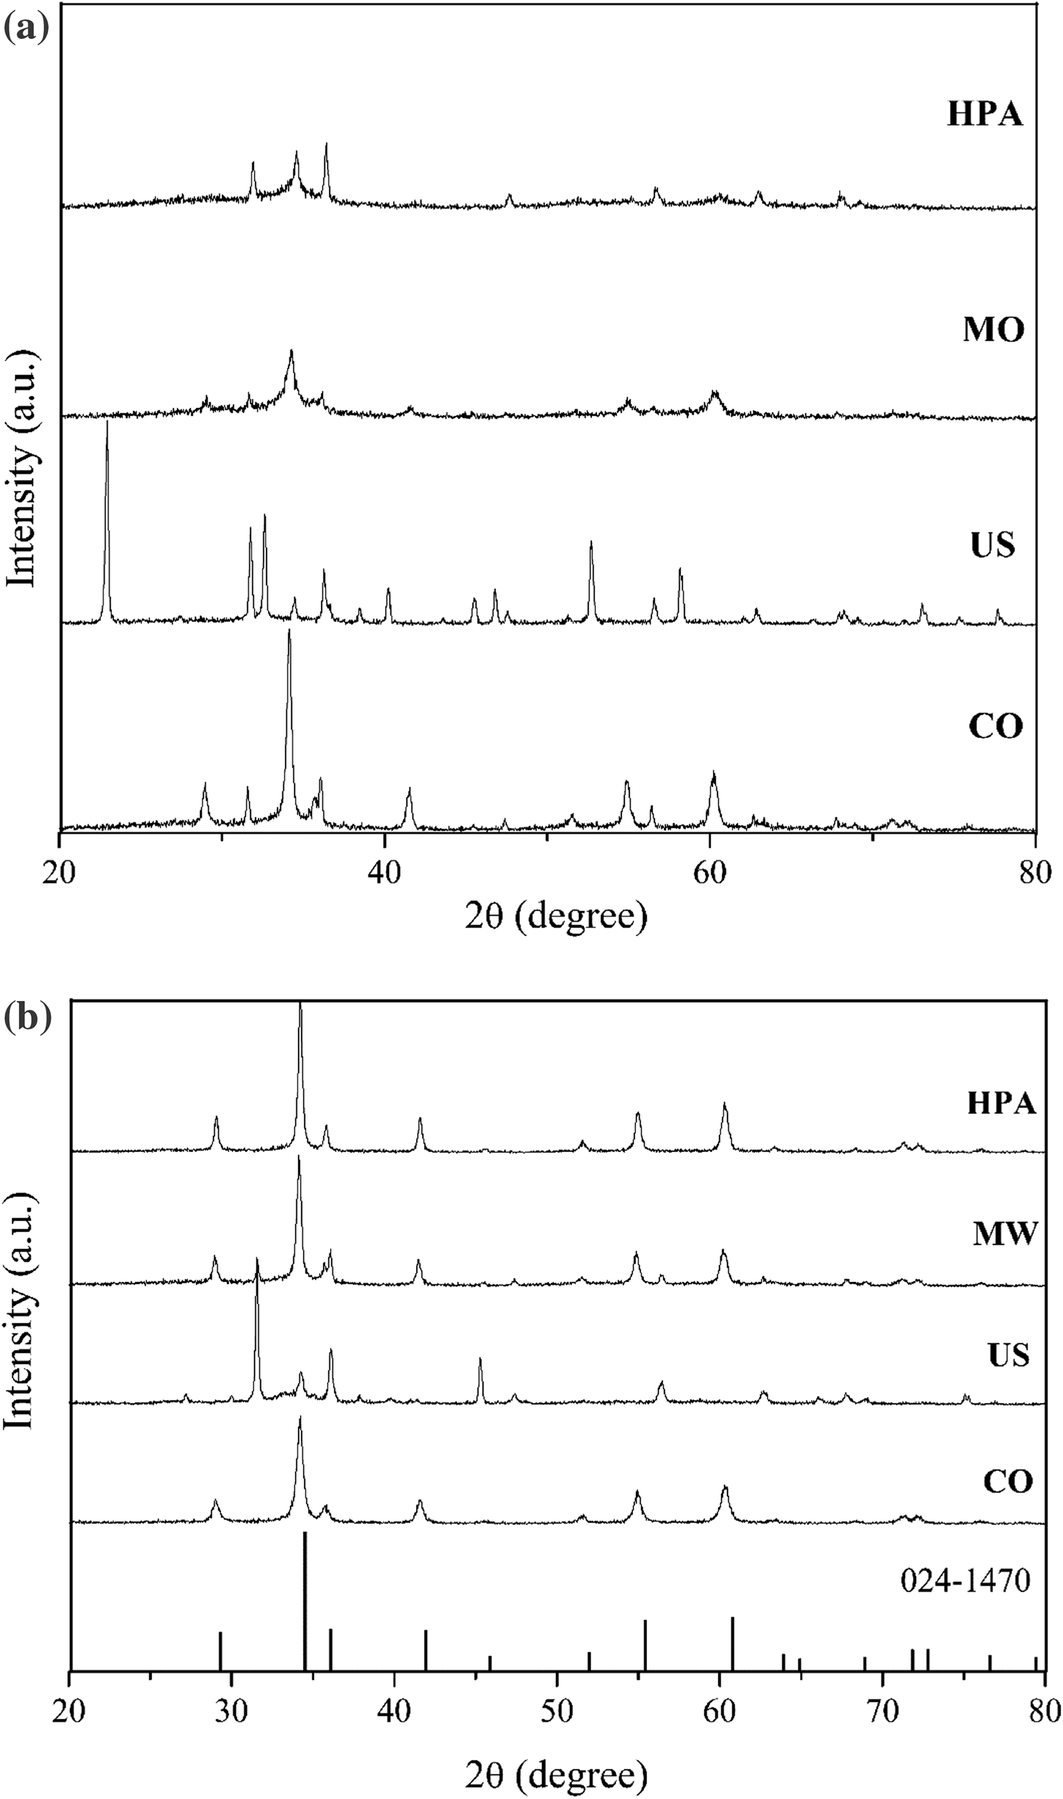 Photocatalytic properties of Zn2SnO4 powders prepared by different